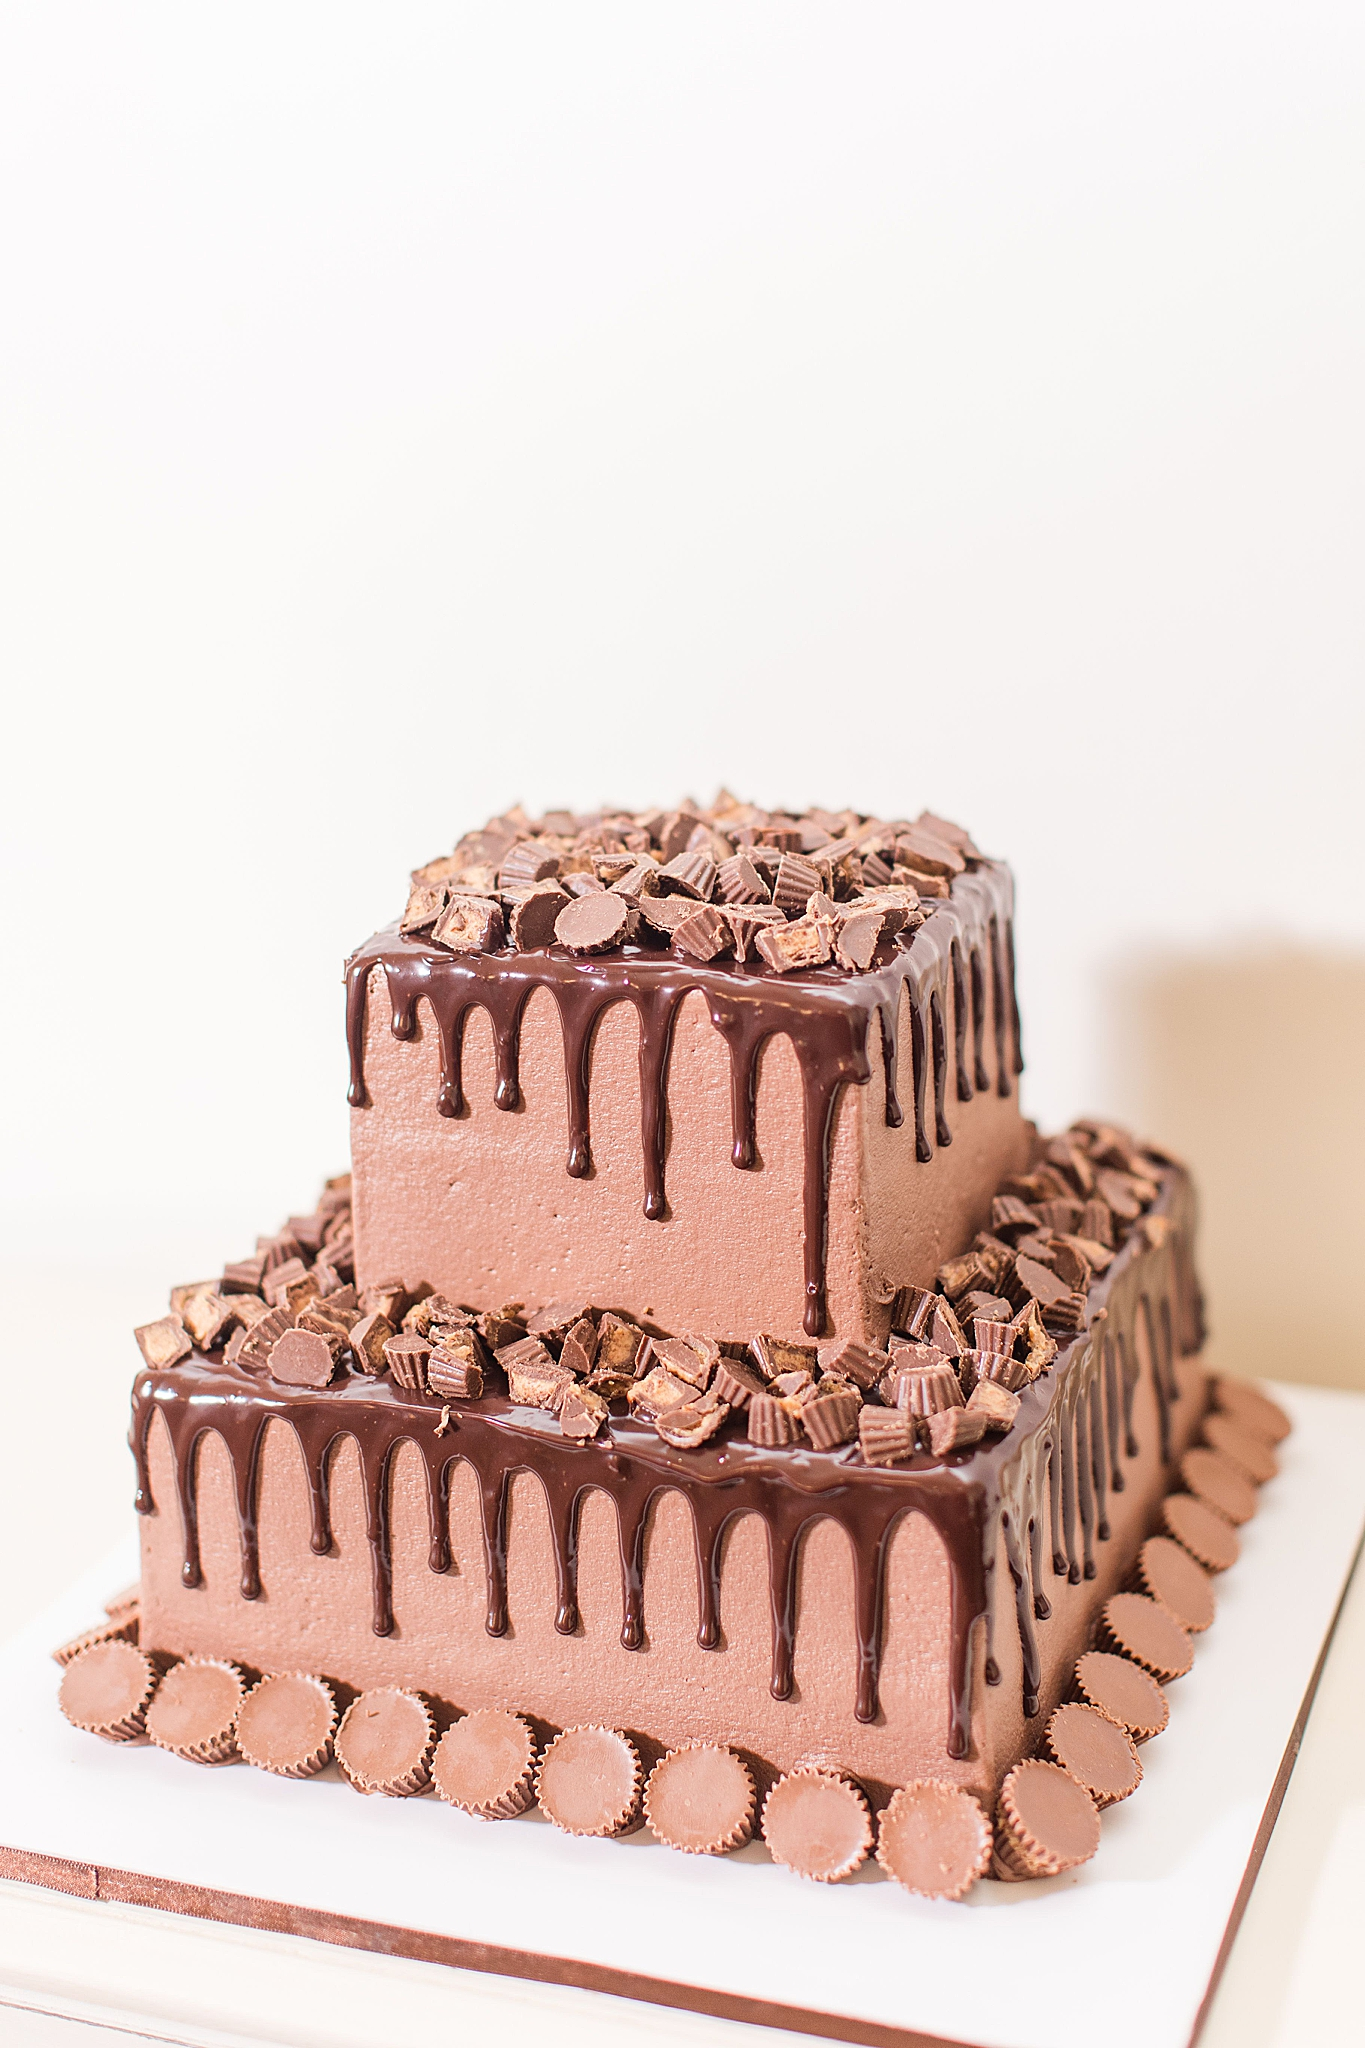 chocolate groom's cake with Reese's cups